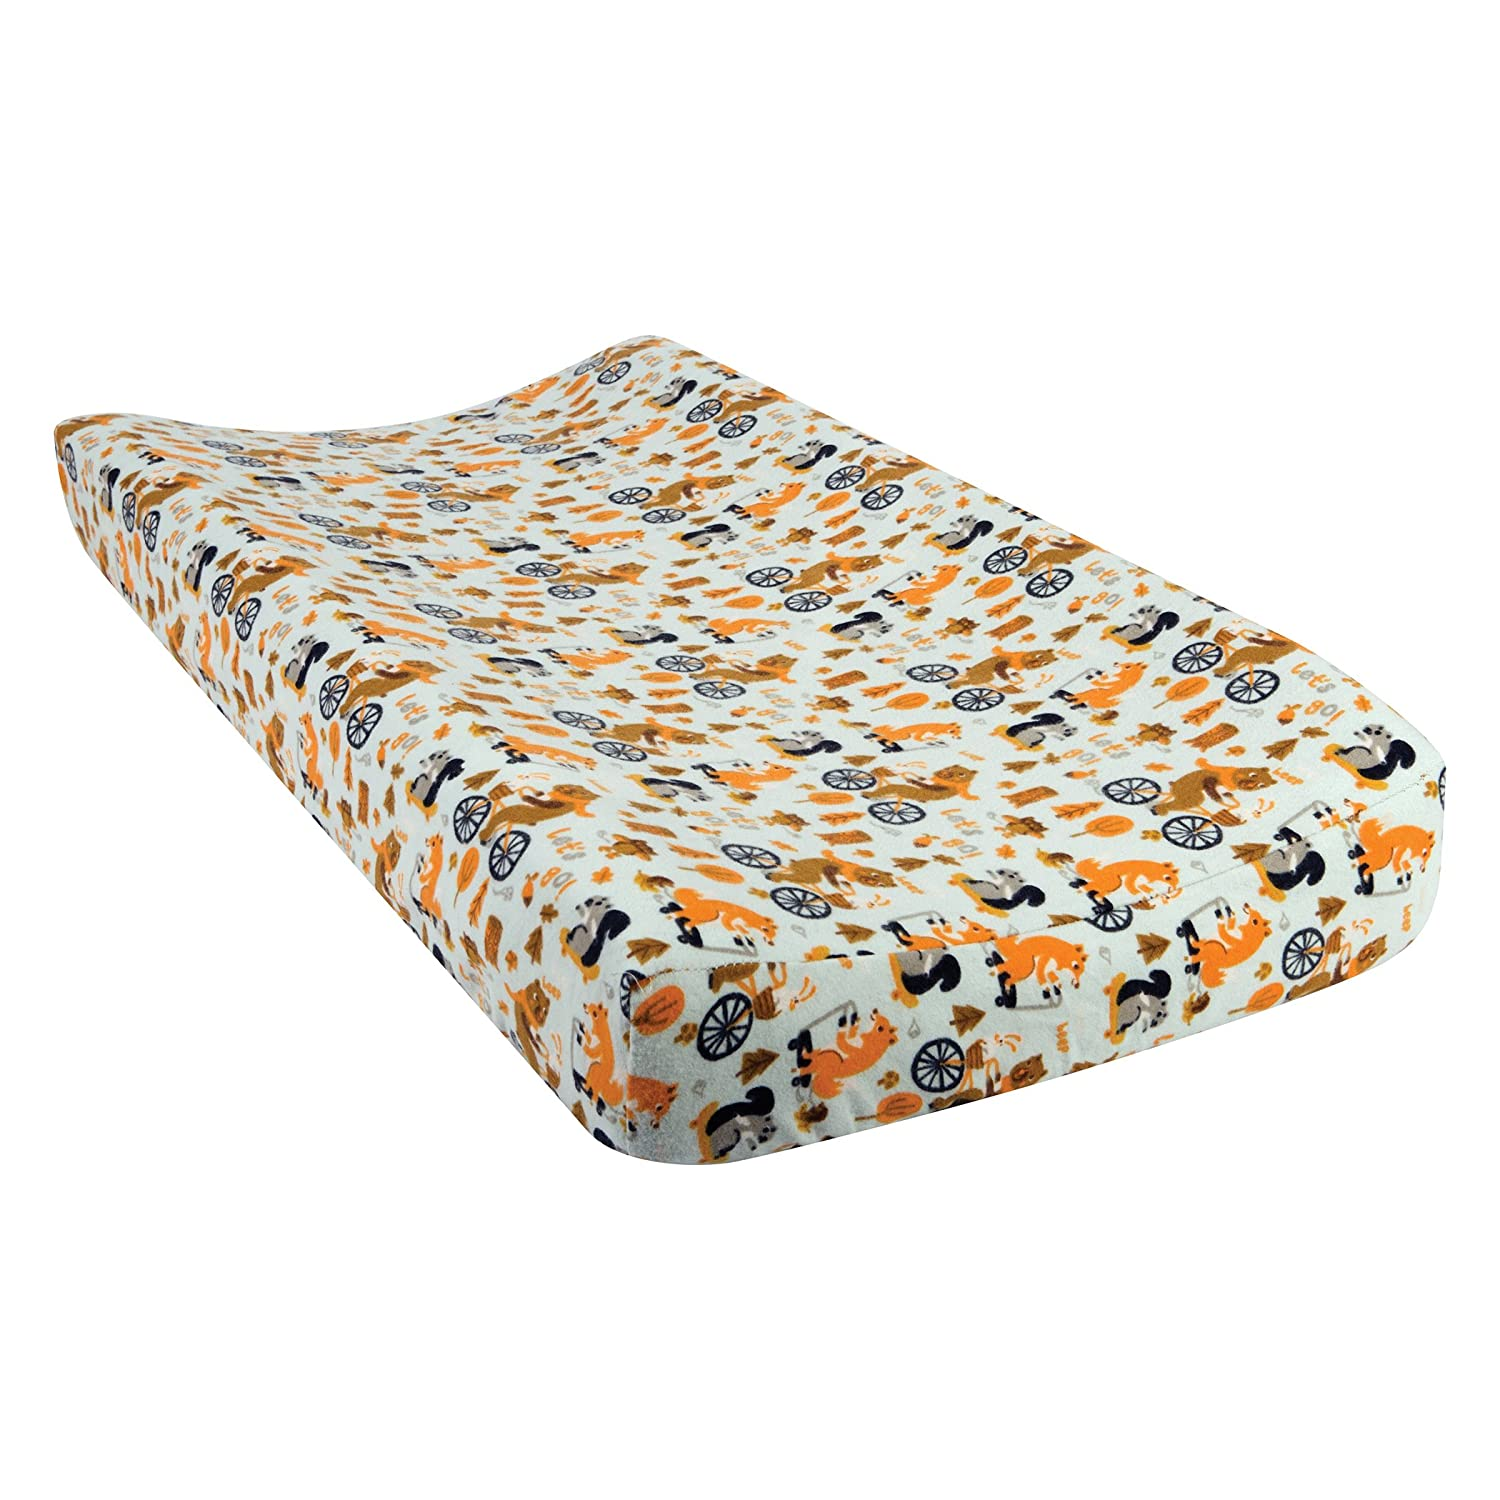 Trend Lab Let's Go Deluxe Flannel Changing Pad Cover 101451